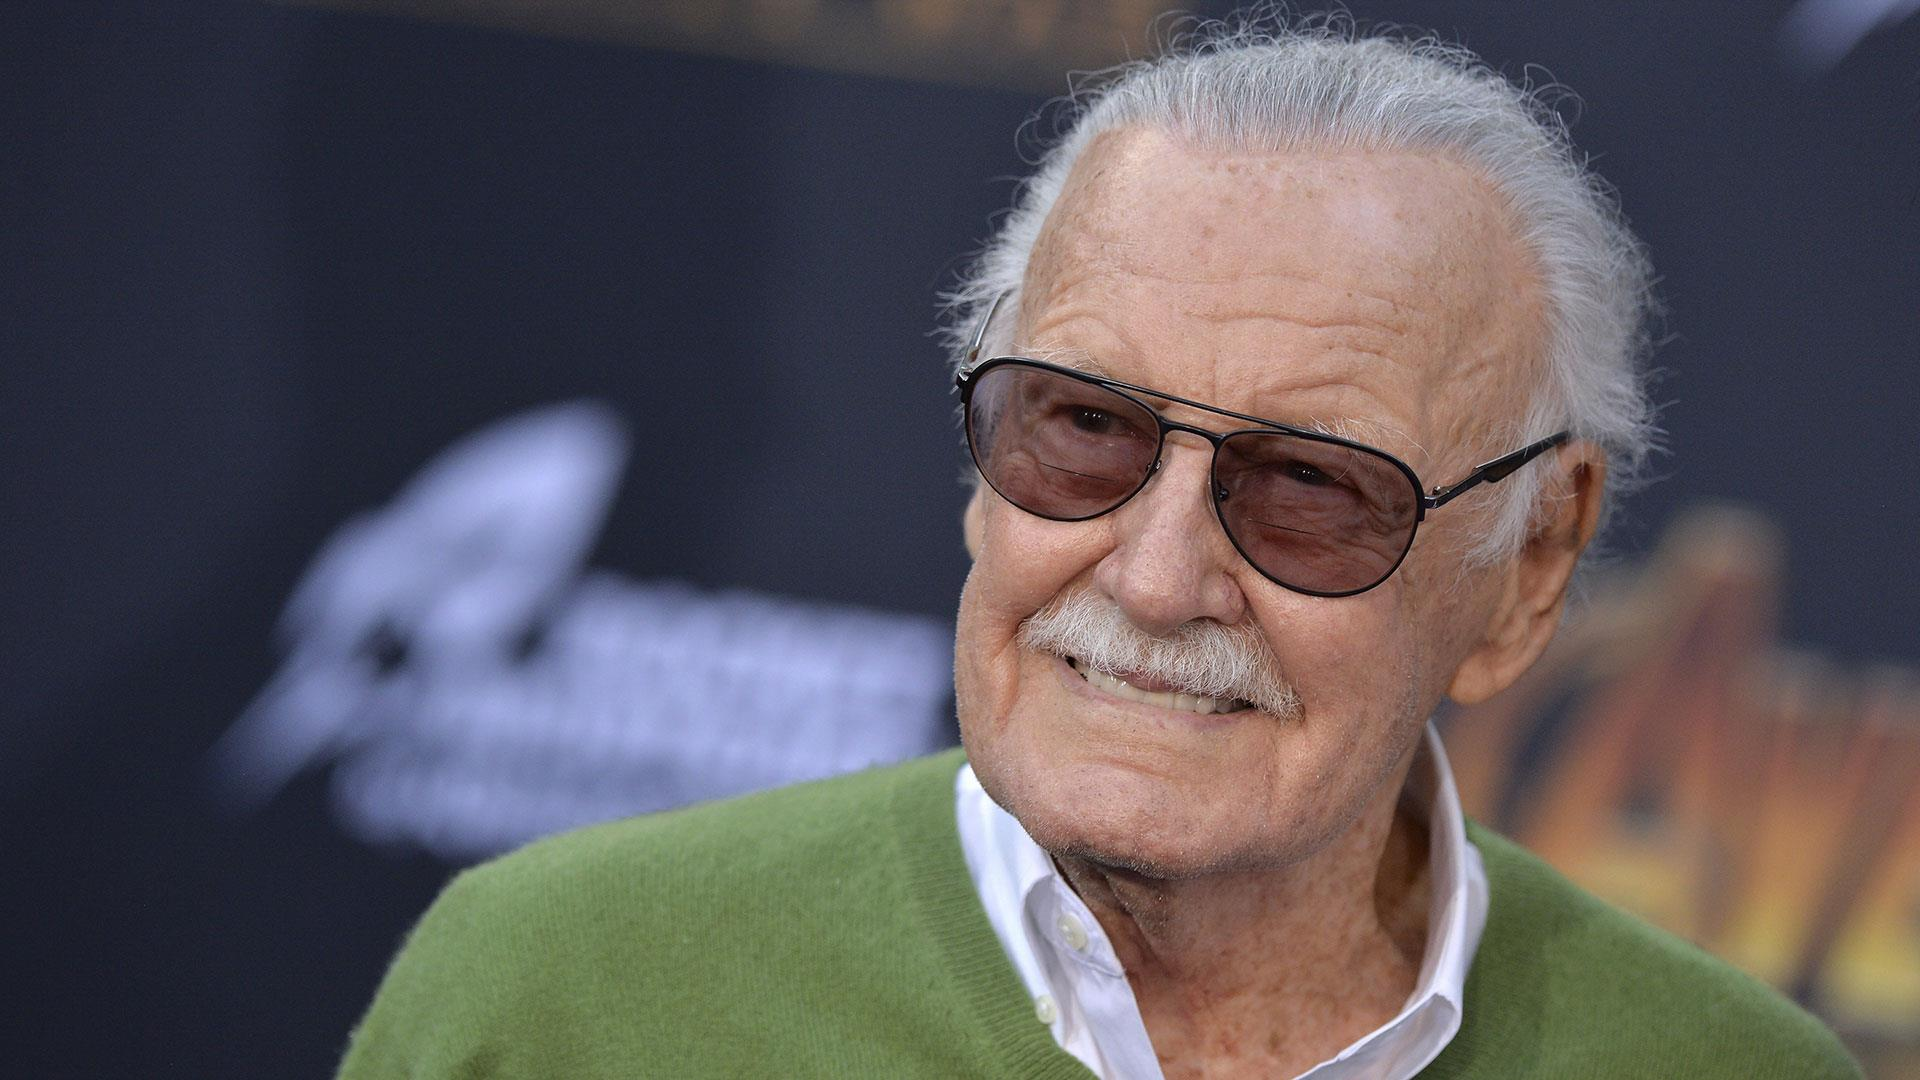 Stan Lee, creator of legendary Marvel comic book superheroes, dies at 95